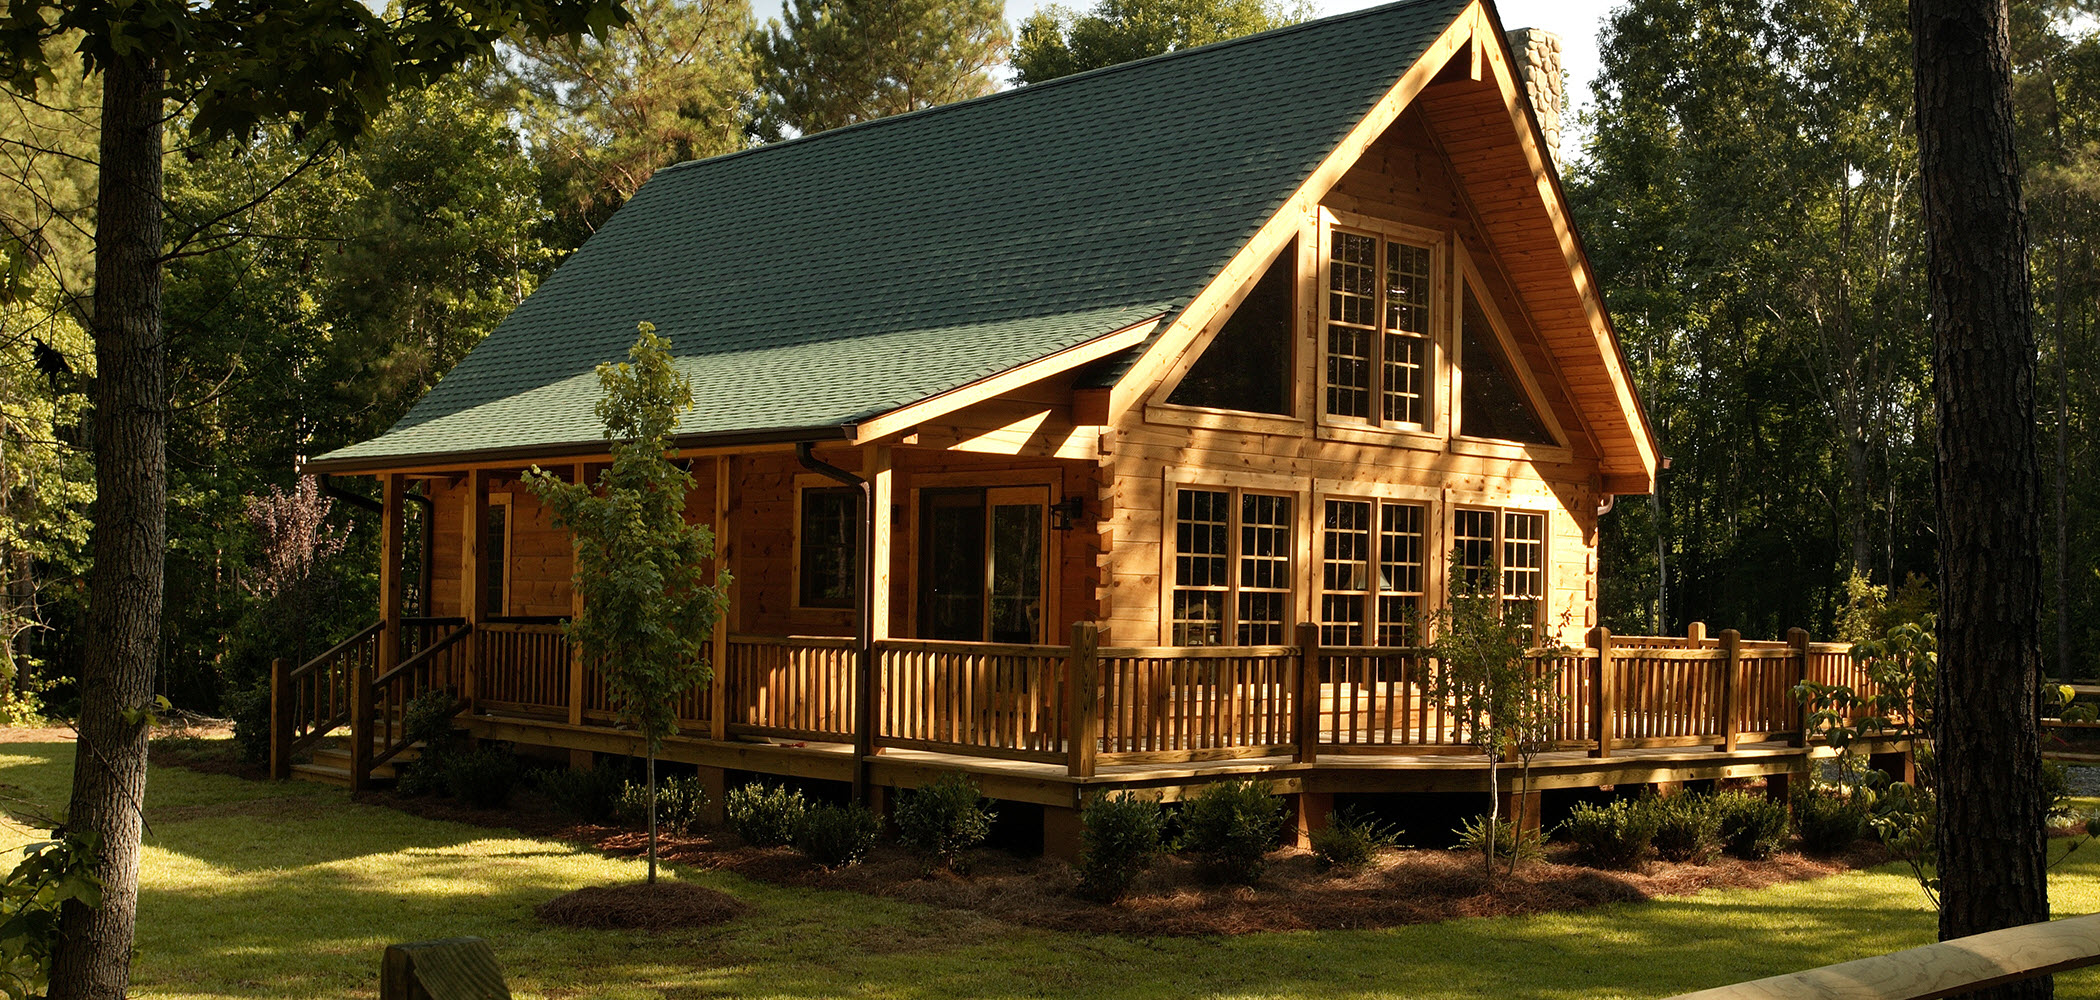 Log houses r nkh zak megaport media for Two bedroom log homes